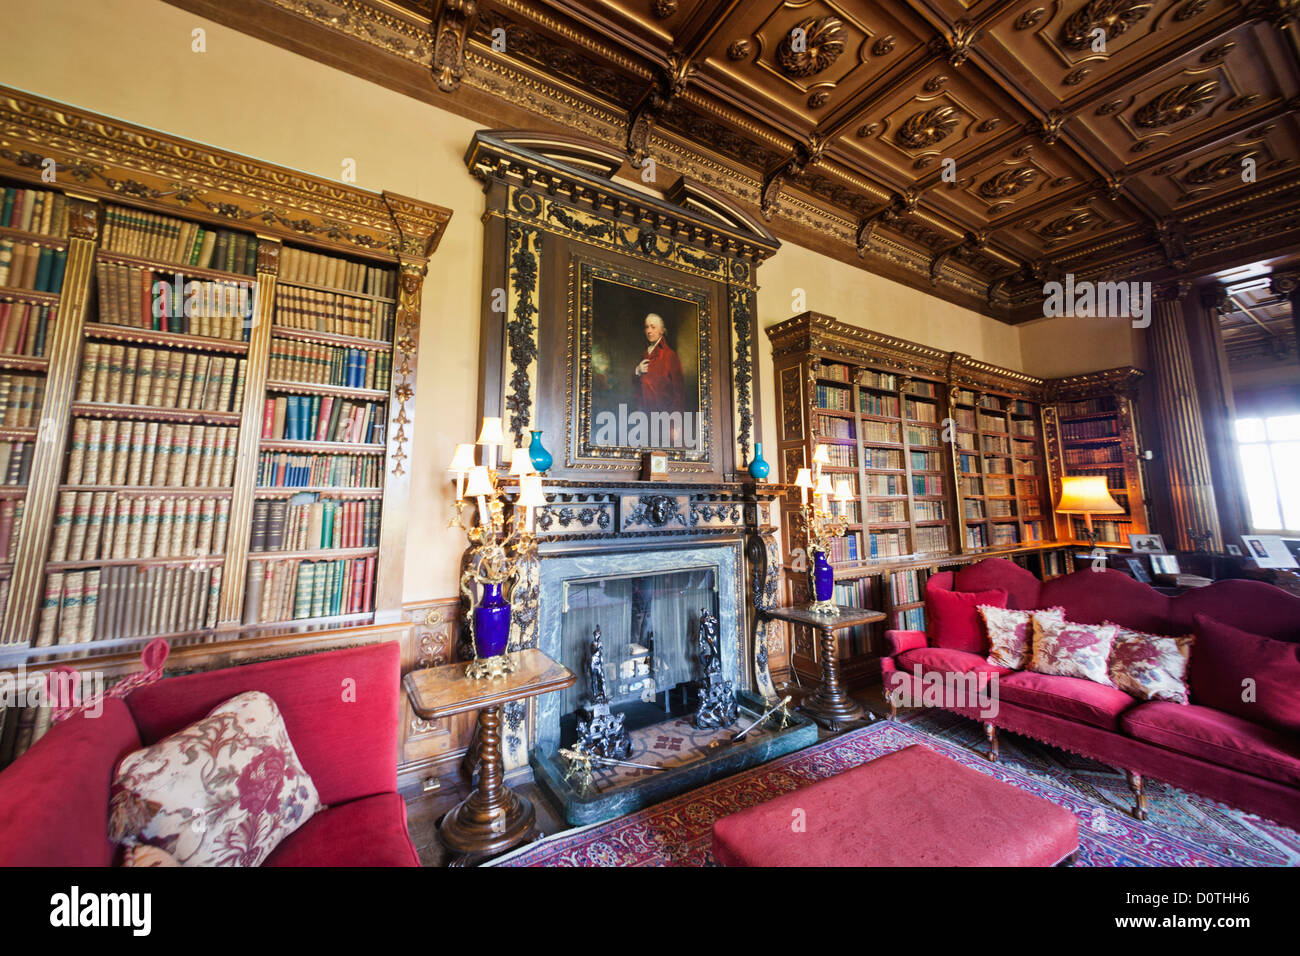 highclere castle interior stock photos & highclere castle interior